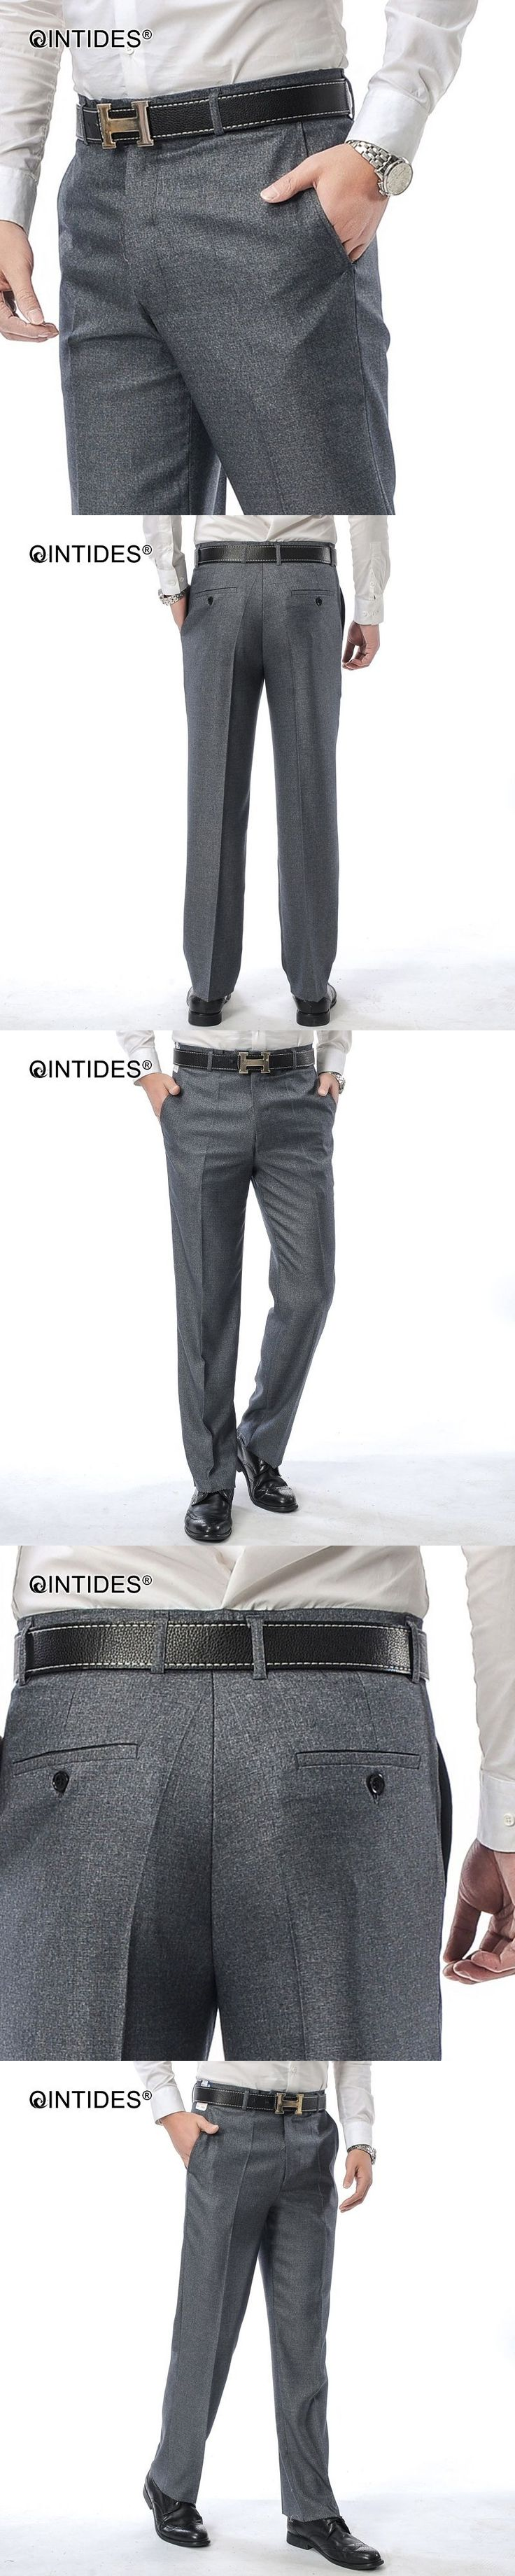 QINTIDES Men's professional dress business pants casual wedding suit trousers thin straight trousers suit pants